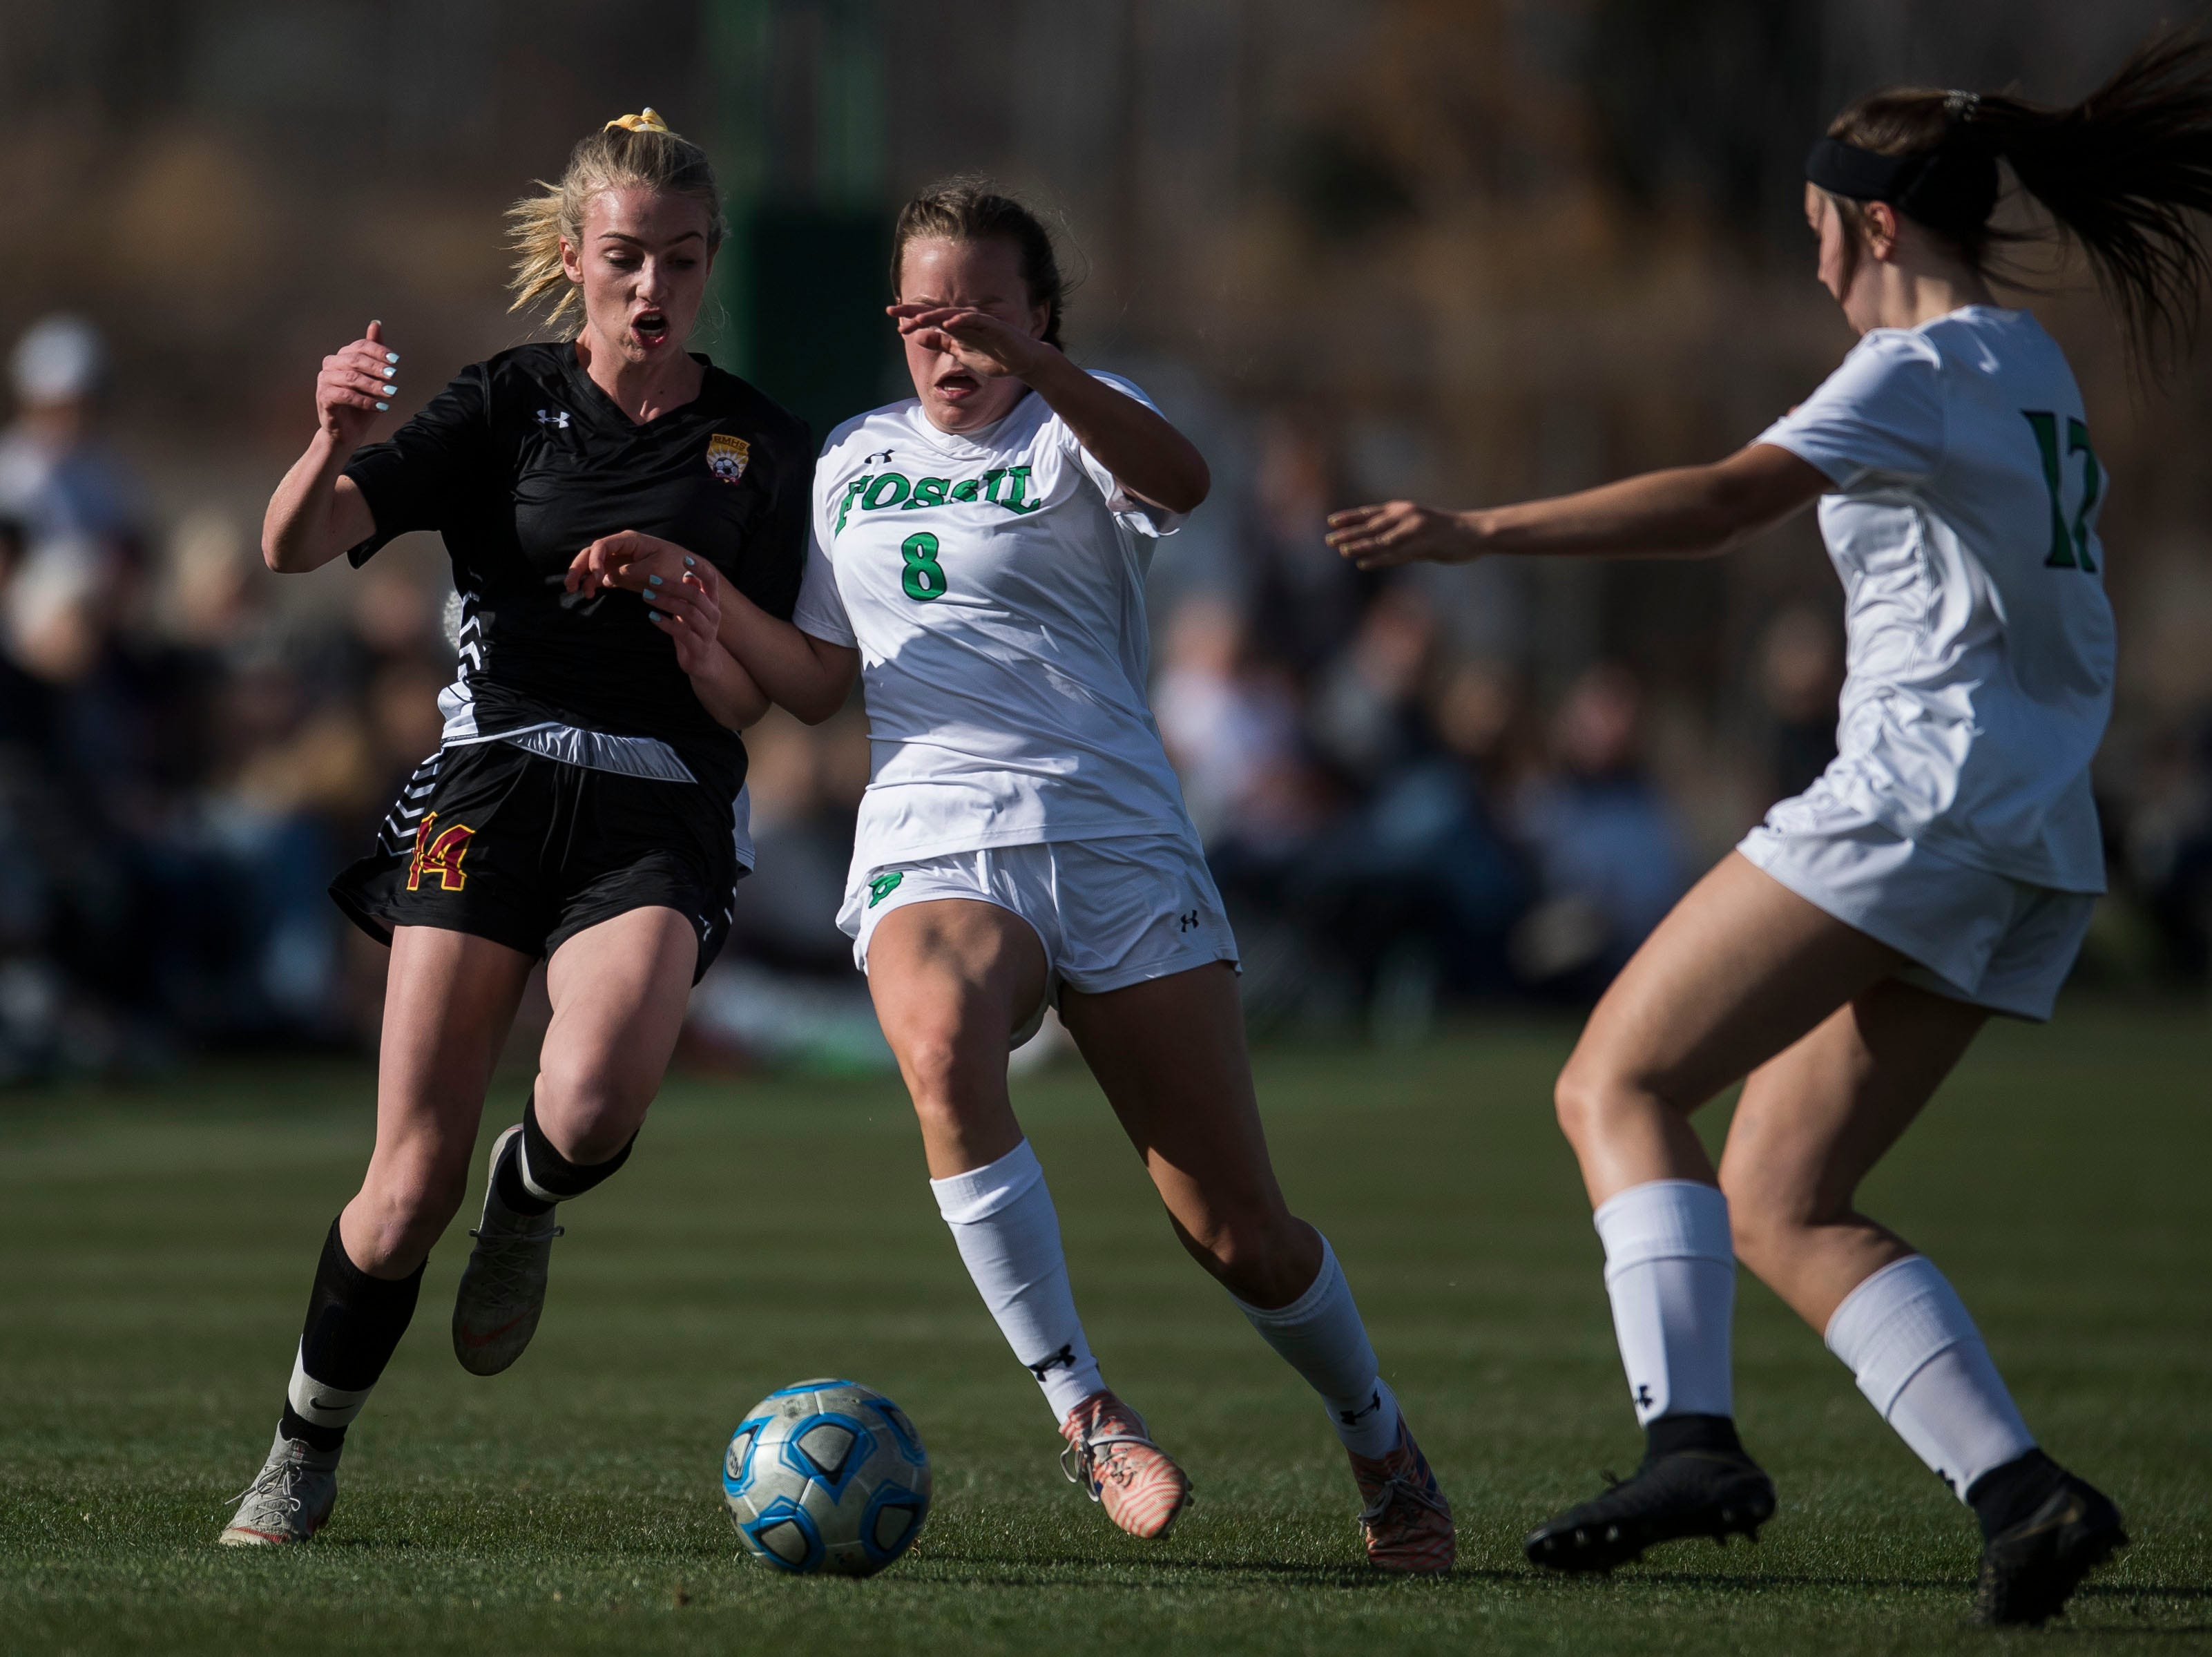 Rocky Mountain High School sophomore Mya Johnson (14) goes up against Fossil Ridge High School senior Jordyn Moser (8) and junior Brianna Punis (17) on Friday, April 4, 2019, at Colorado State University's soccer field in Fort Collins, Colo.